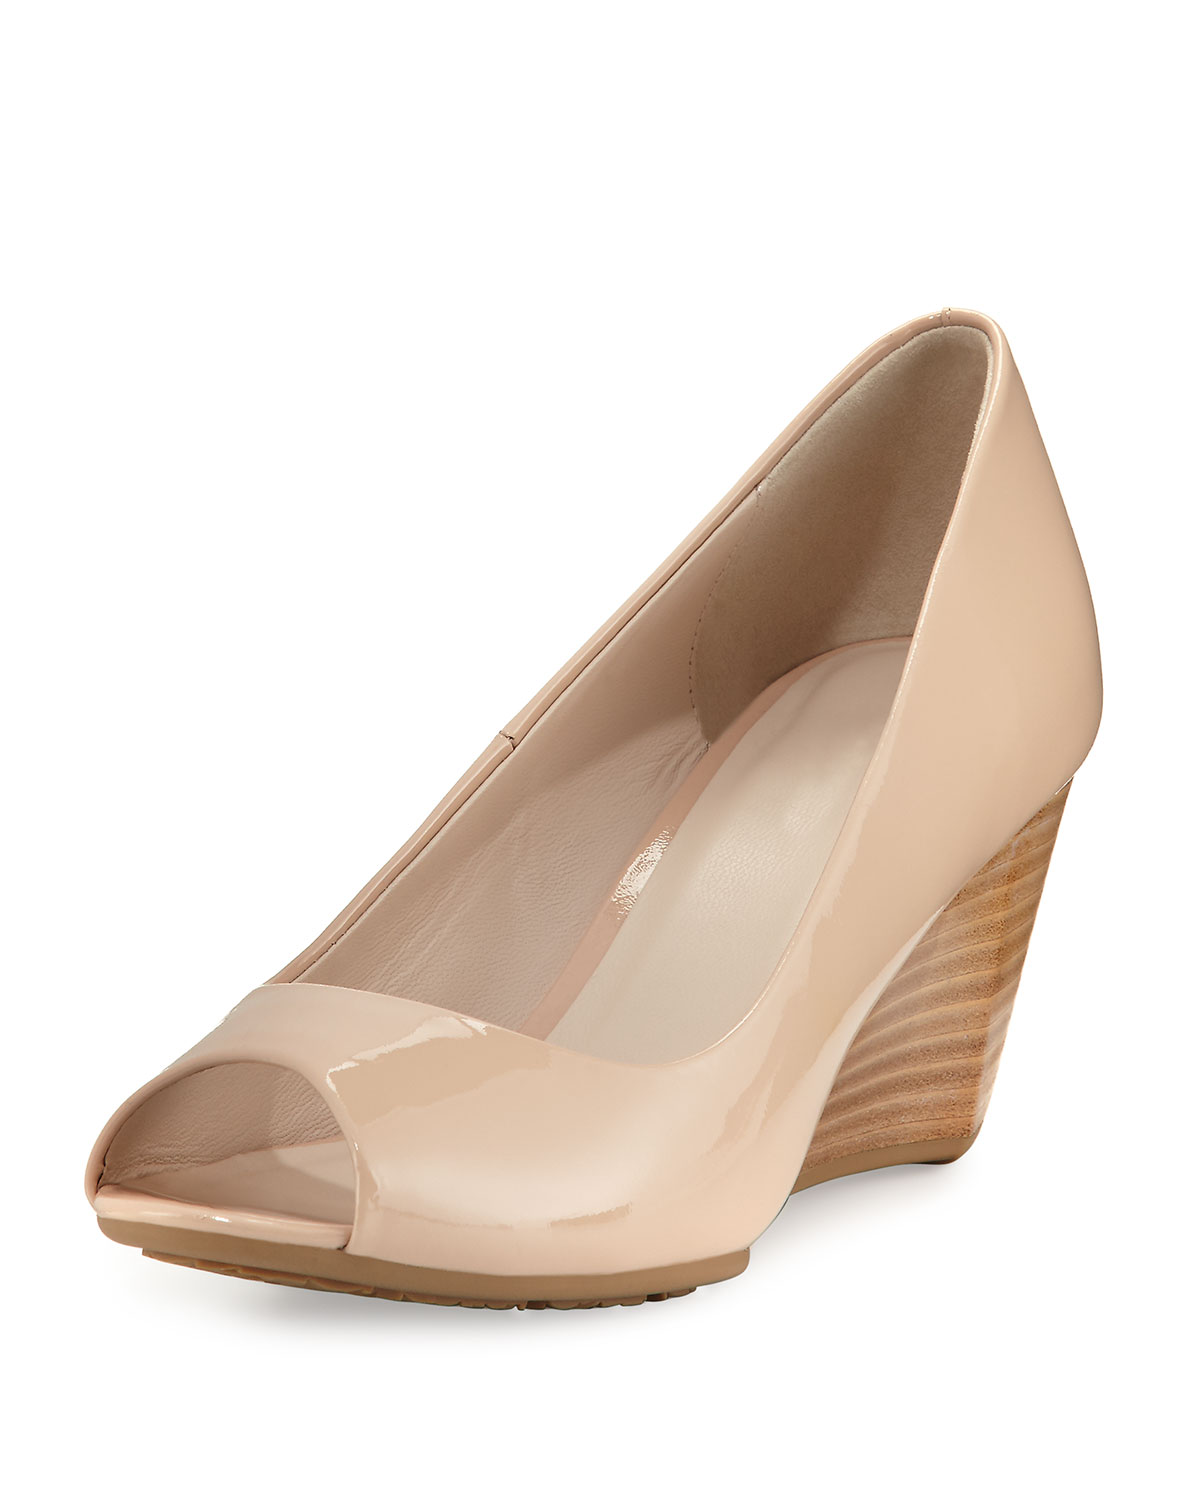 8f171abedf Cole Haan Sadie Grand Patent Leather Wedge Pump, Nude | Neiman Marcus